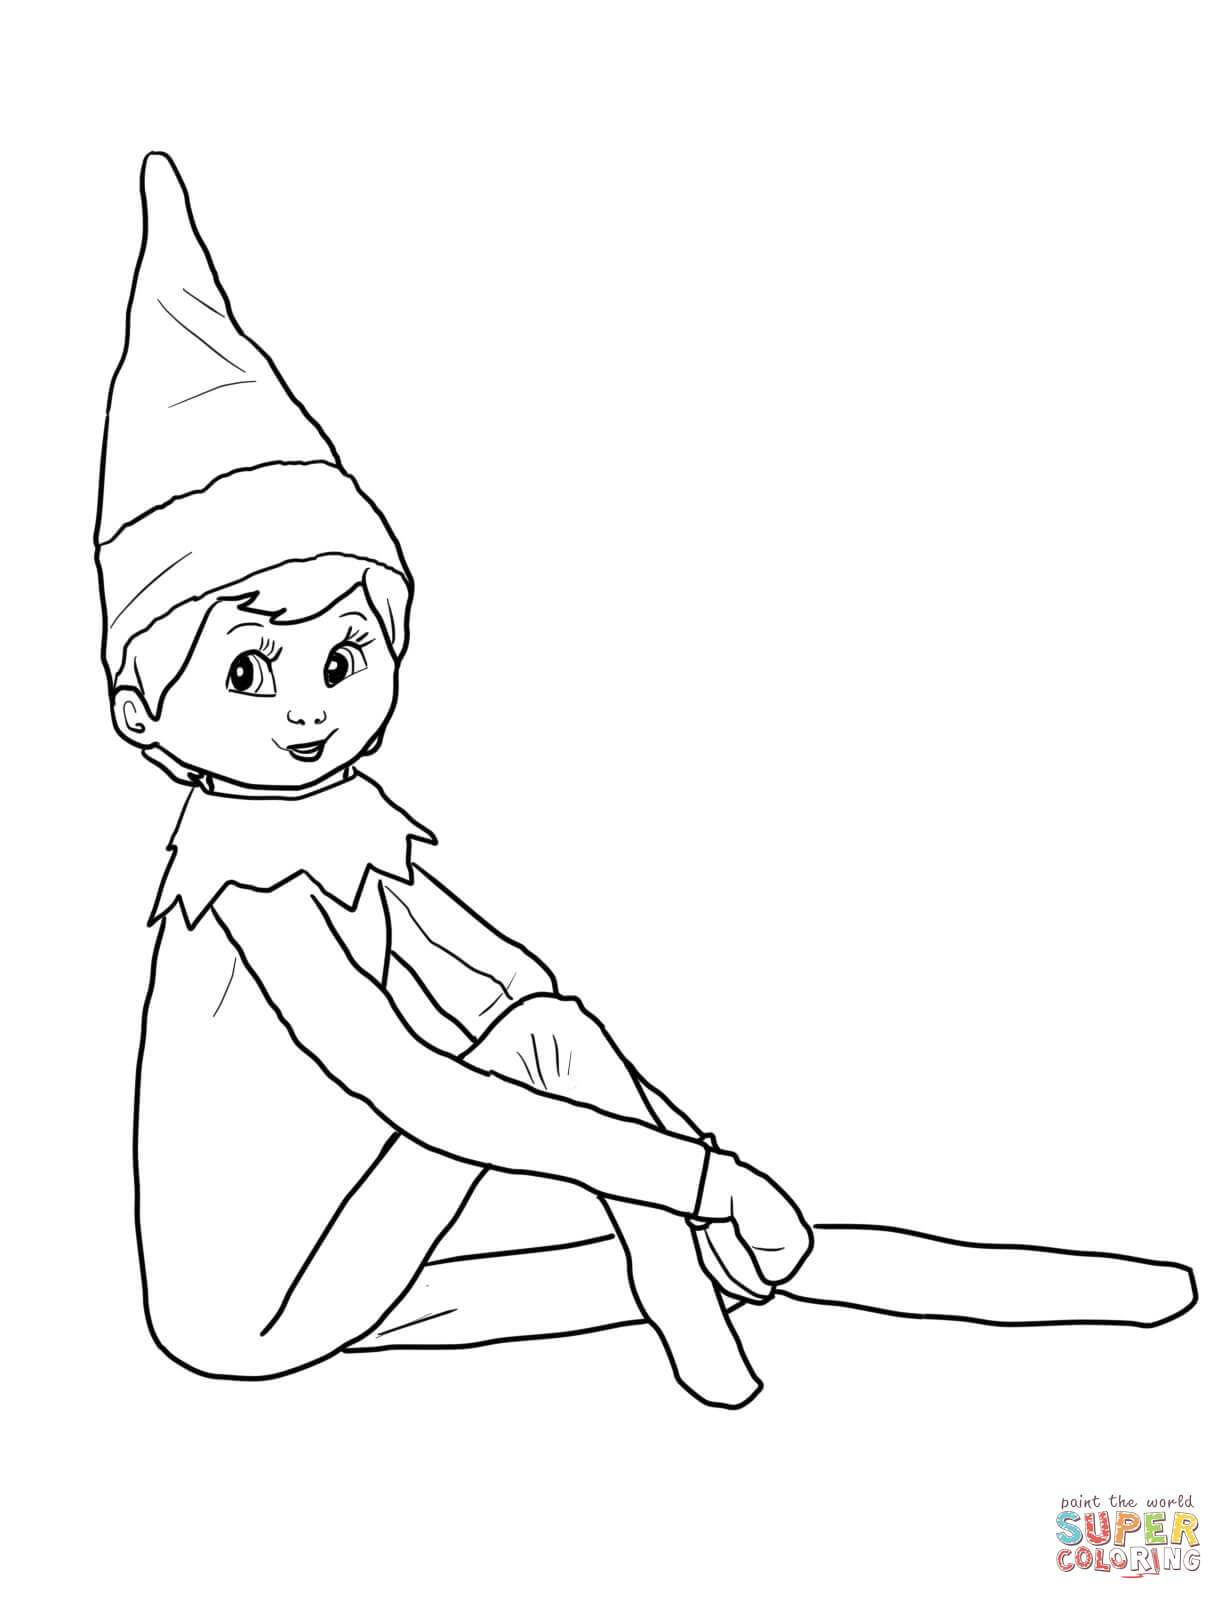 Click the elf on the shelf coloring pages to view printable